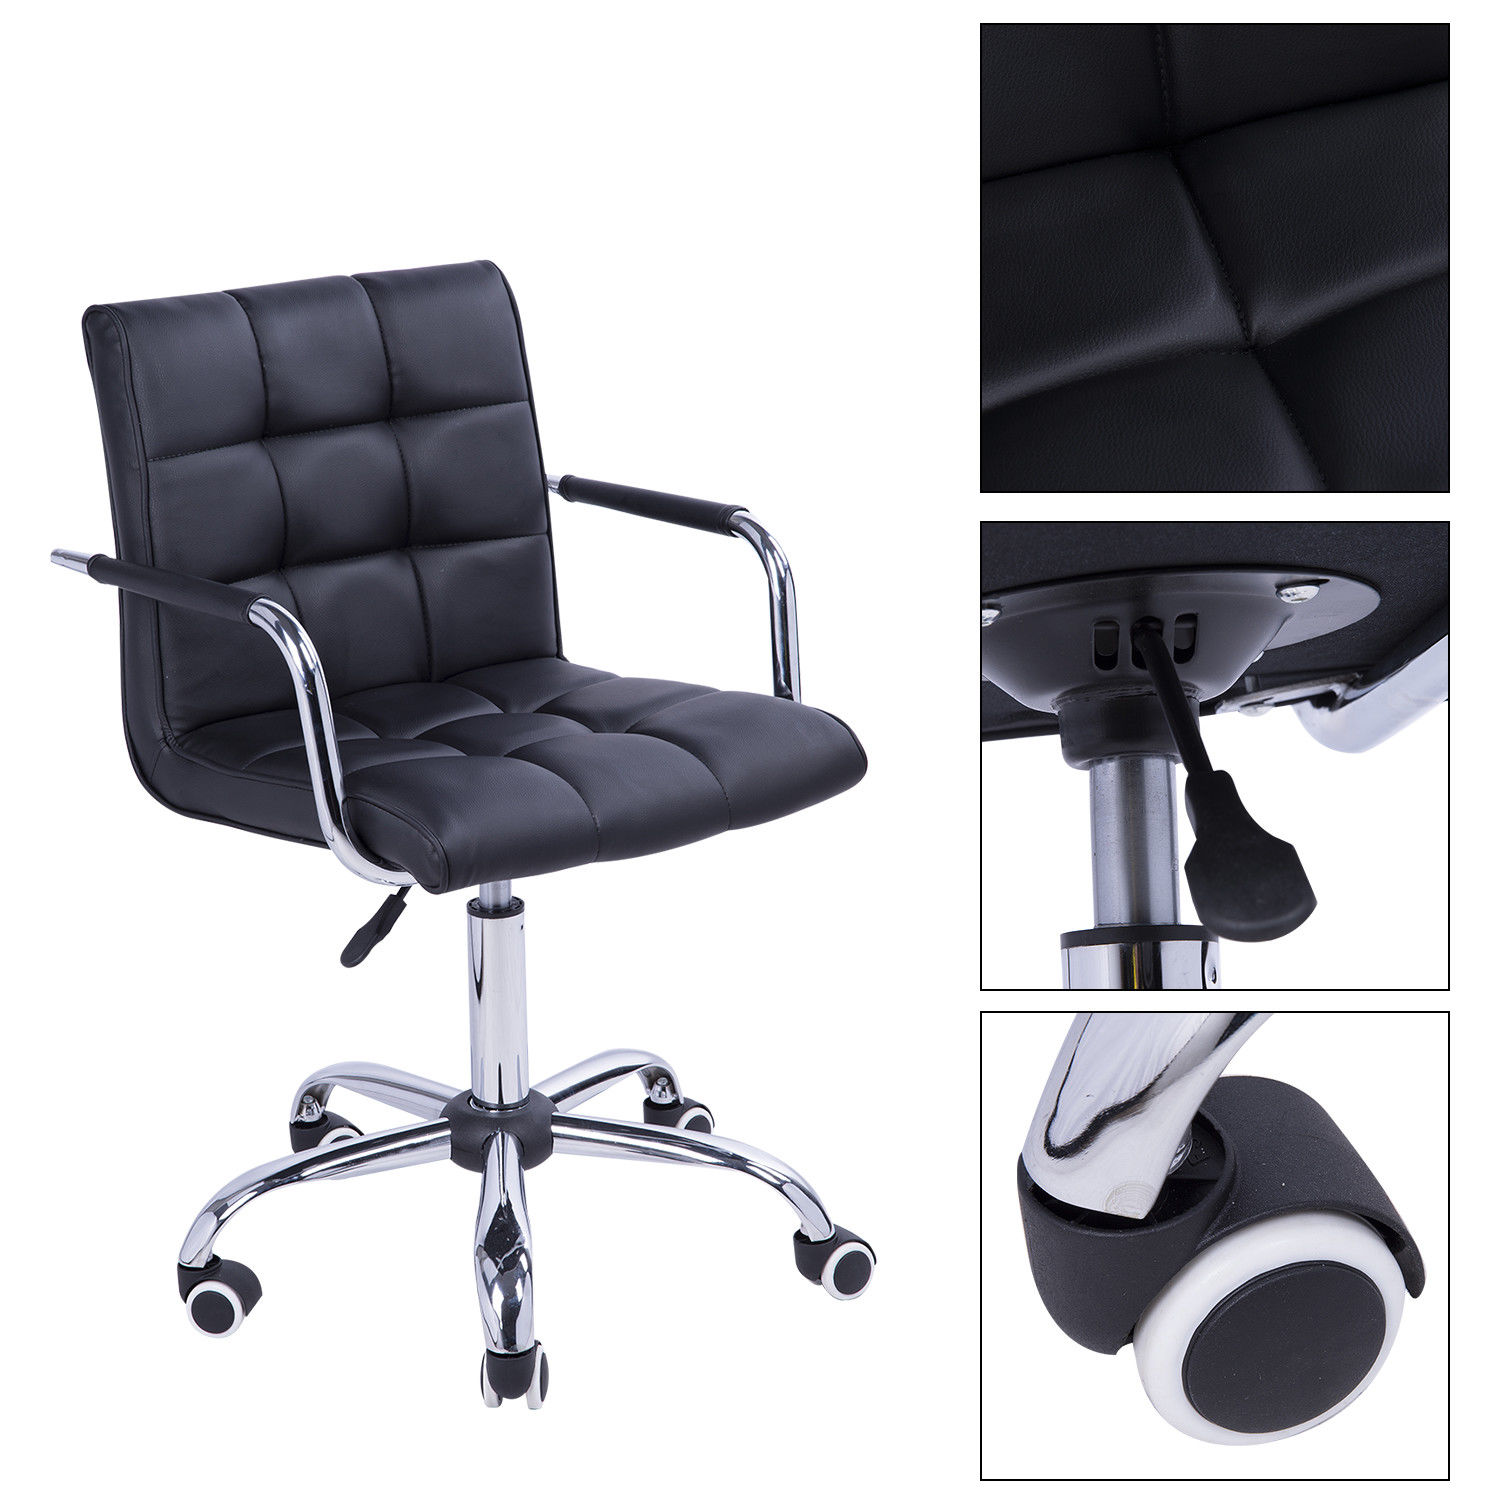 Superb Details About Midback Executive Modern Office Chair Computer Desk Task Pu Leather Swivel Machost Co Dining Chair Design Ideas Machostcouk